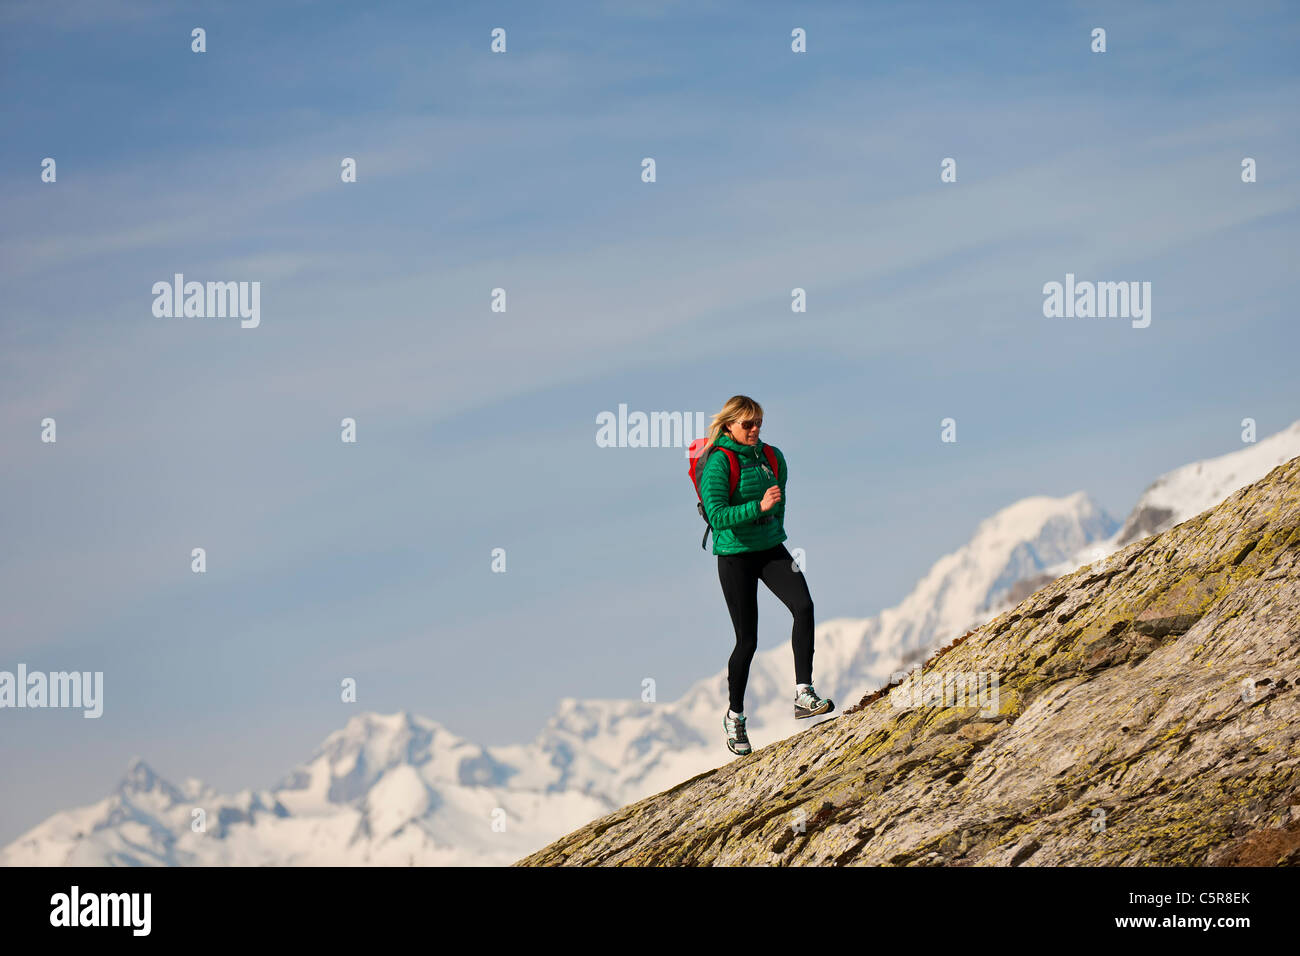 A runner runs over a rocky mountain. - Stock Image